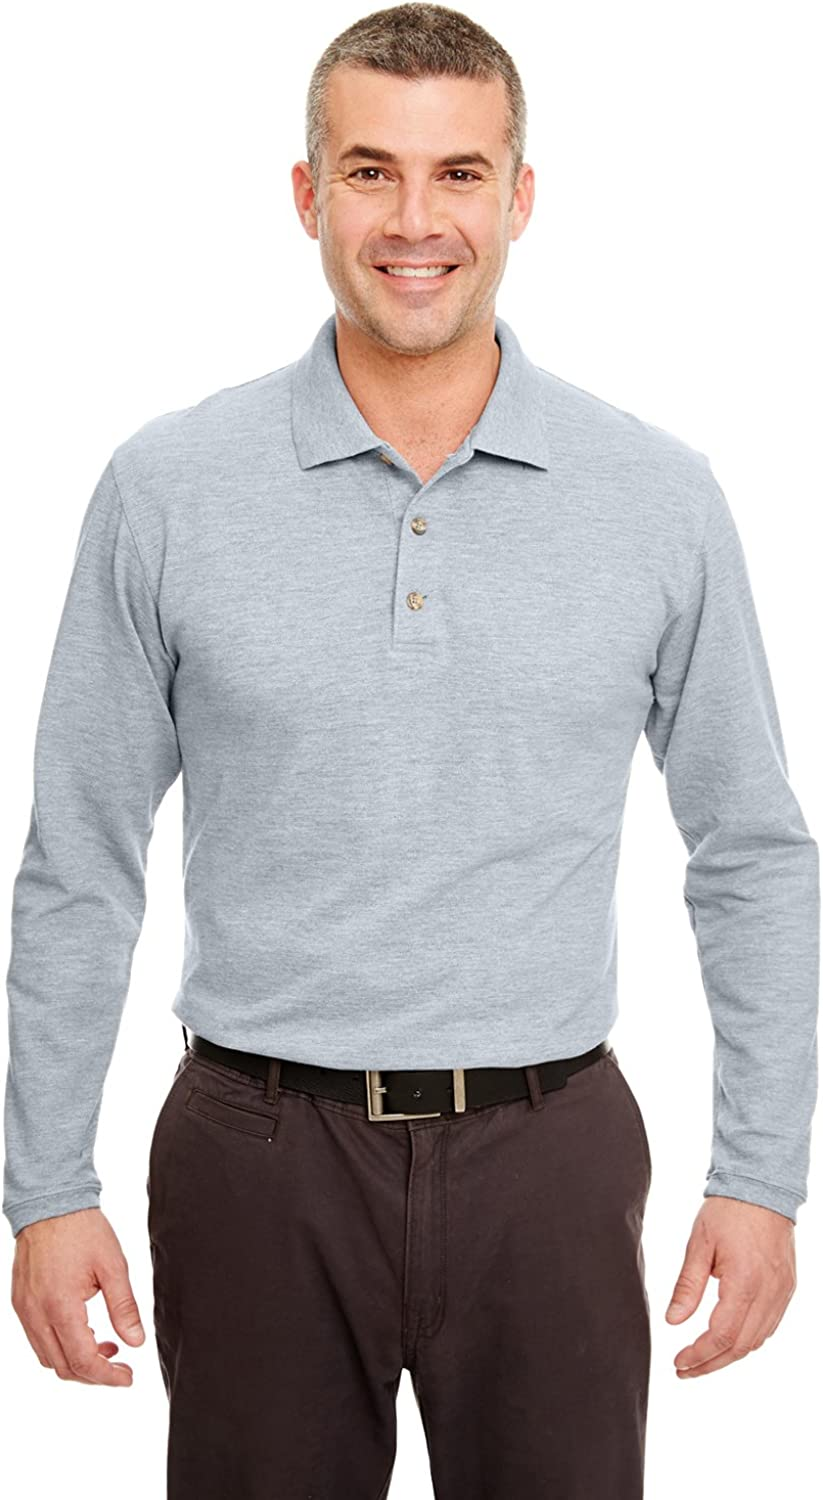 UltraClub Polo Shirt 8532 Solid Men's Long-Sleeve Classic Pique Grey